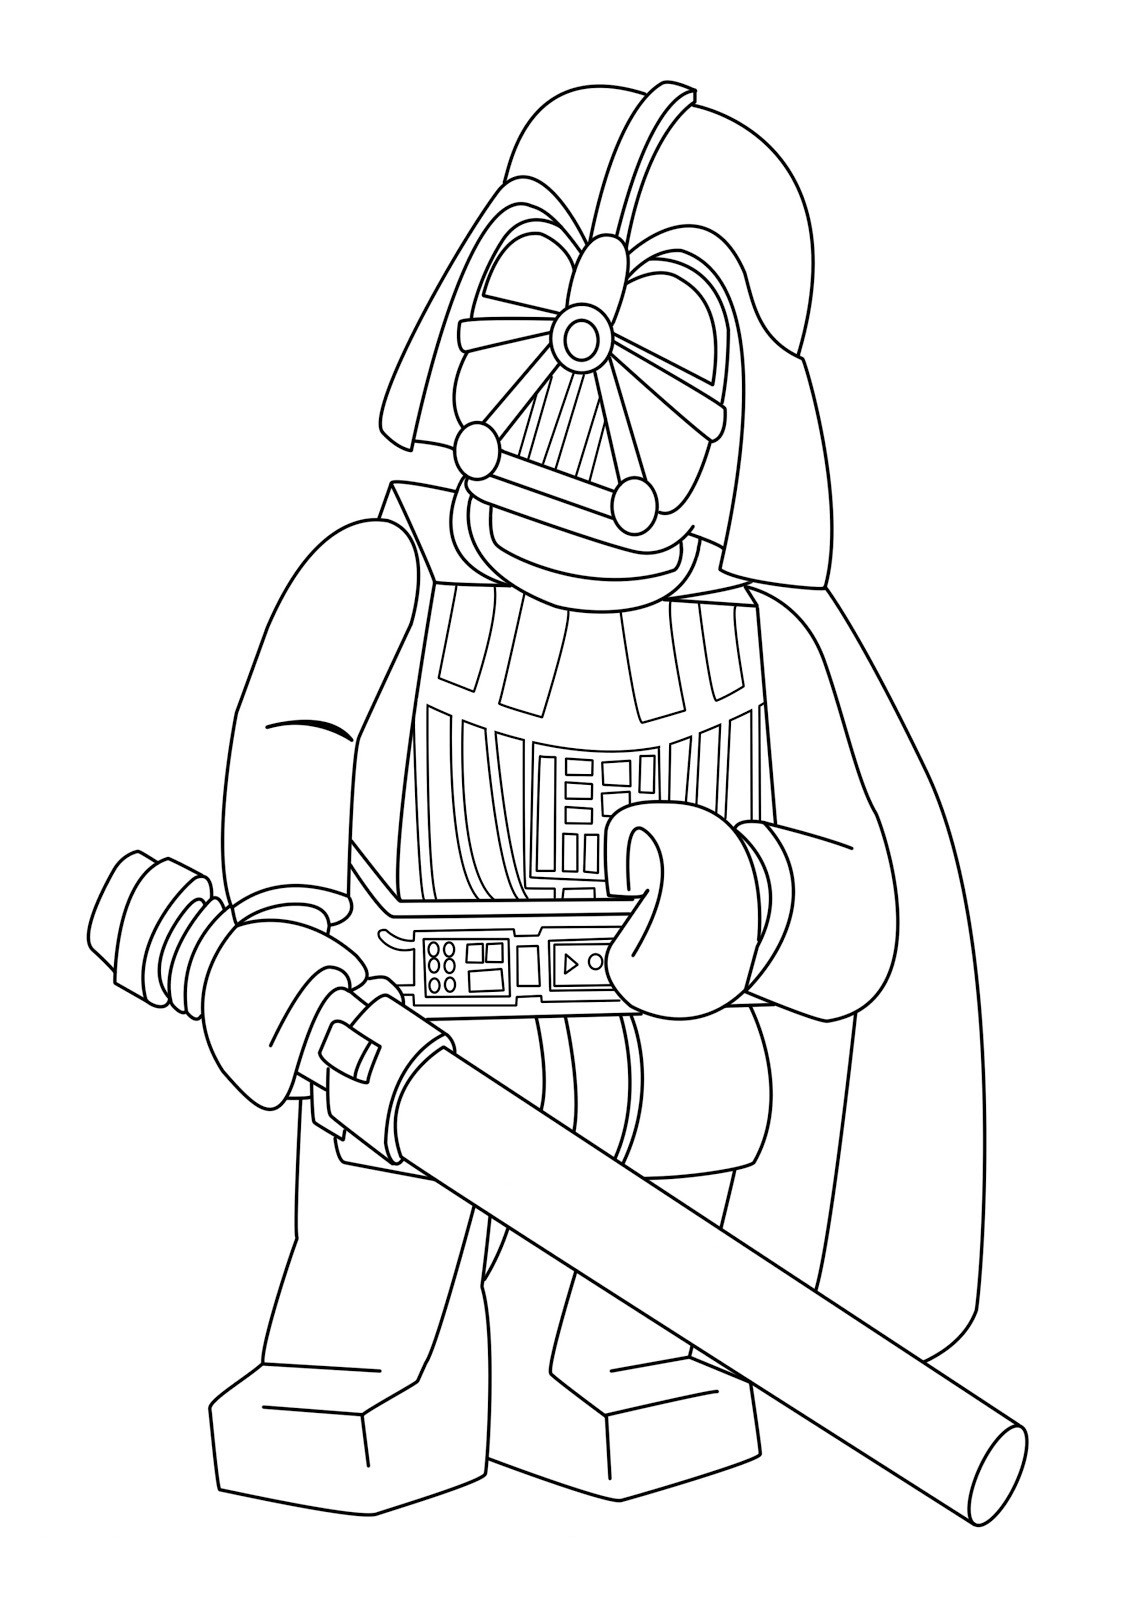 Lego Star Wars Coloring Pages  Star Wars Coloring Pages Free Printable Star Wars